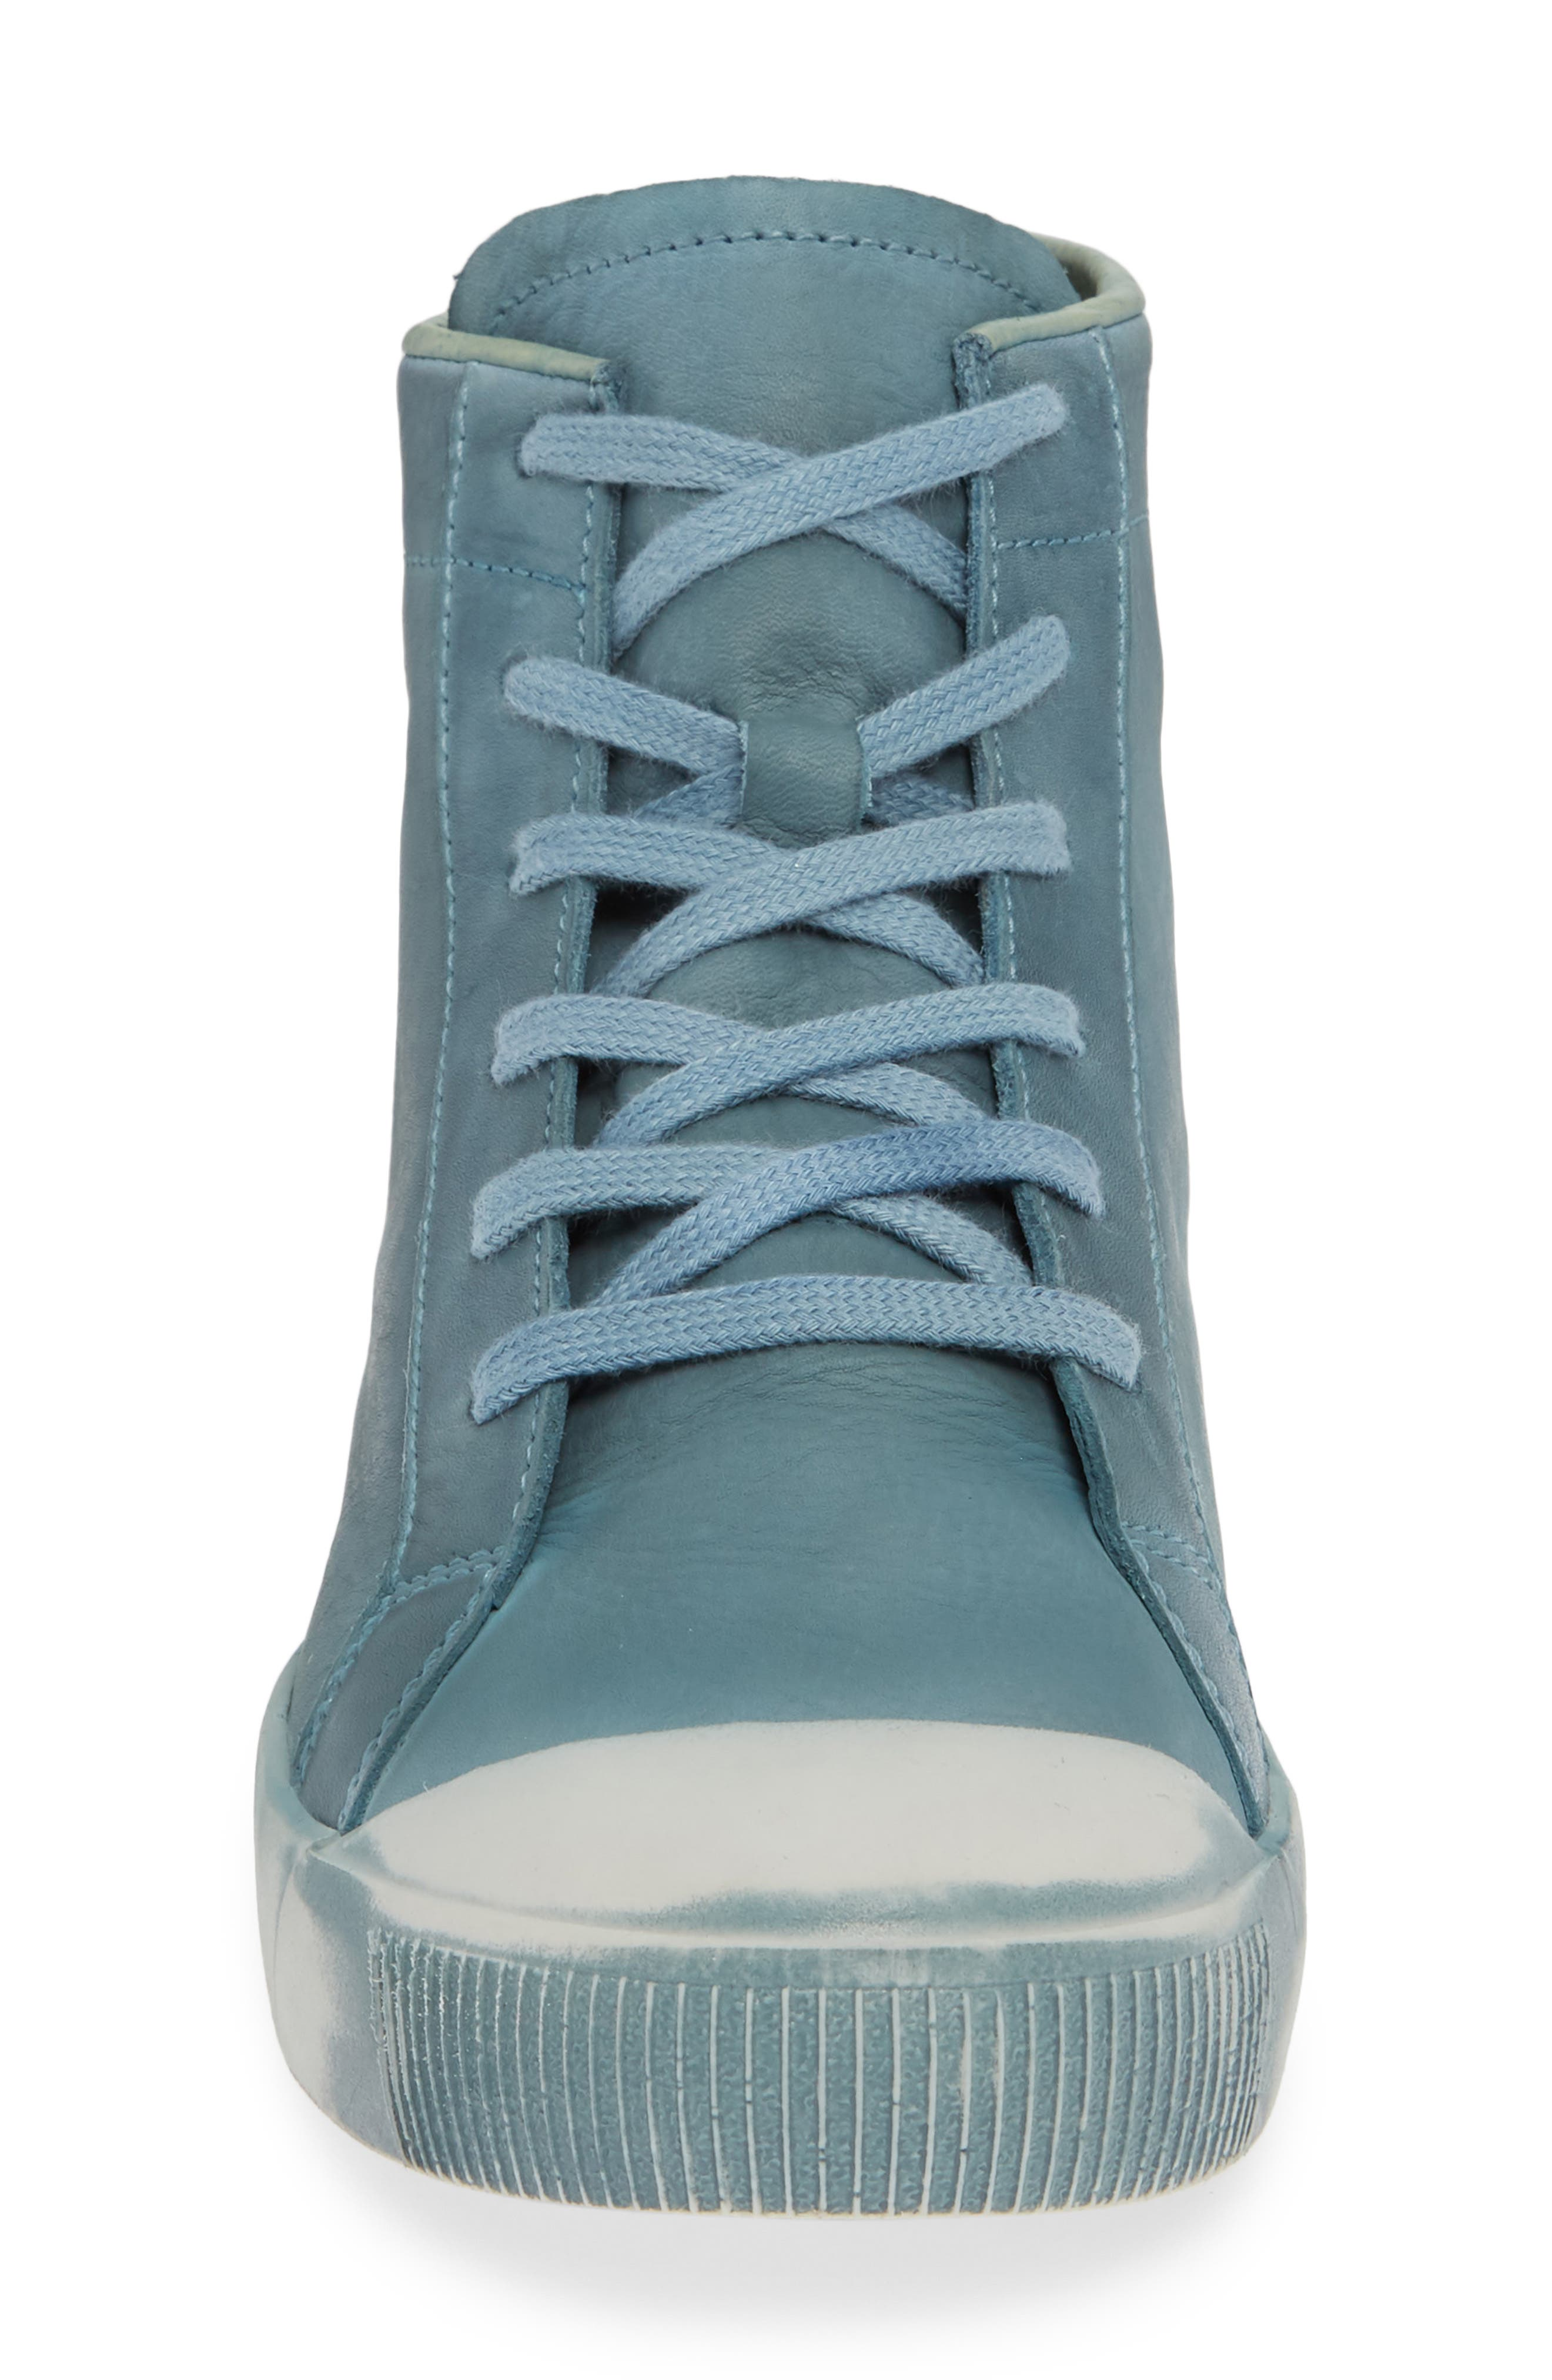 Kip High Top Sneaker,                             Alternate thumbnail 4, color,                             NUDE BLUE WASHED LEATHER